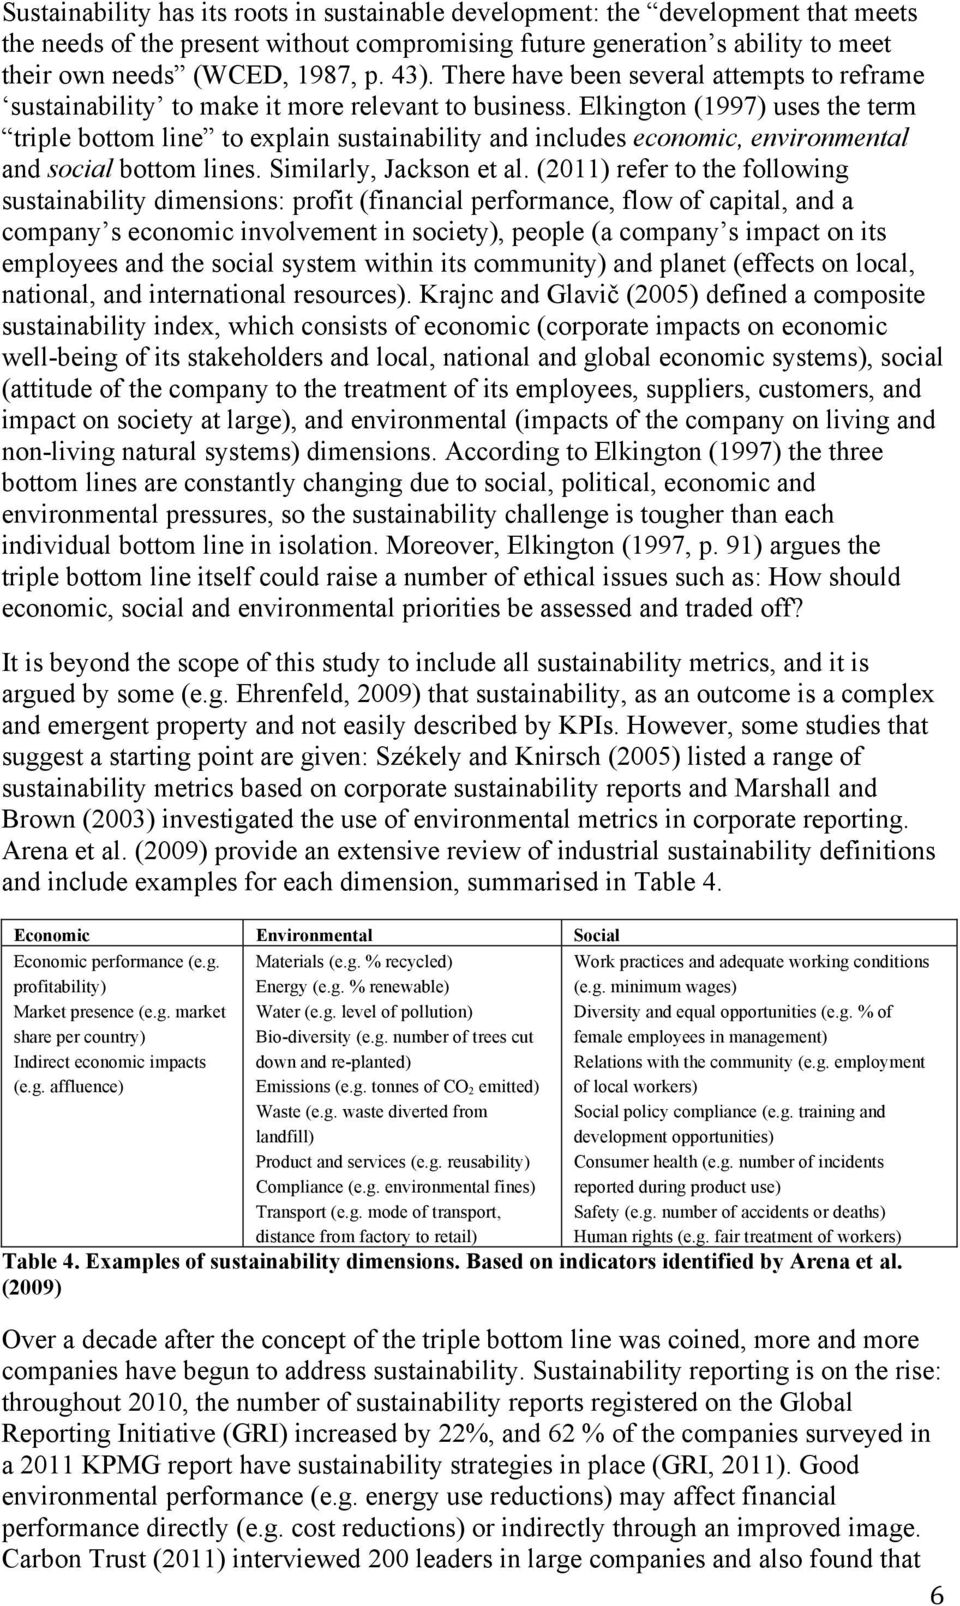 Elkington (1997) uses the term triple bottom line to explain sustainability and includes economic, environmental and social bottom lines. Similarly, Jackson et al.